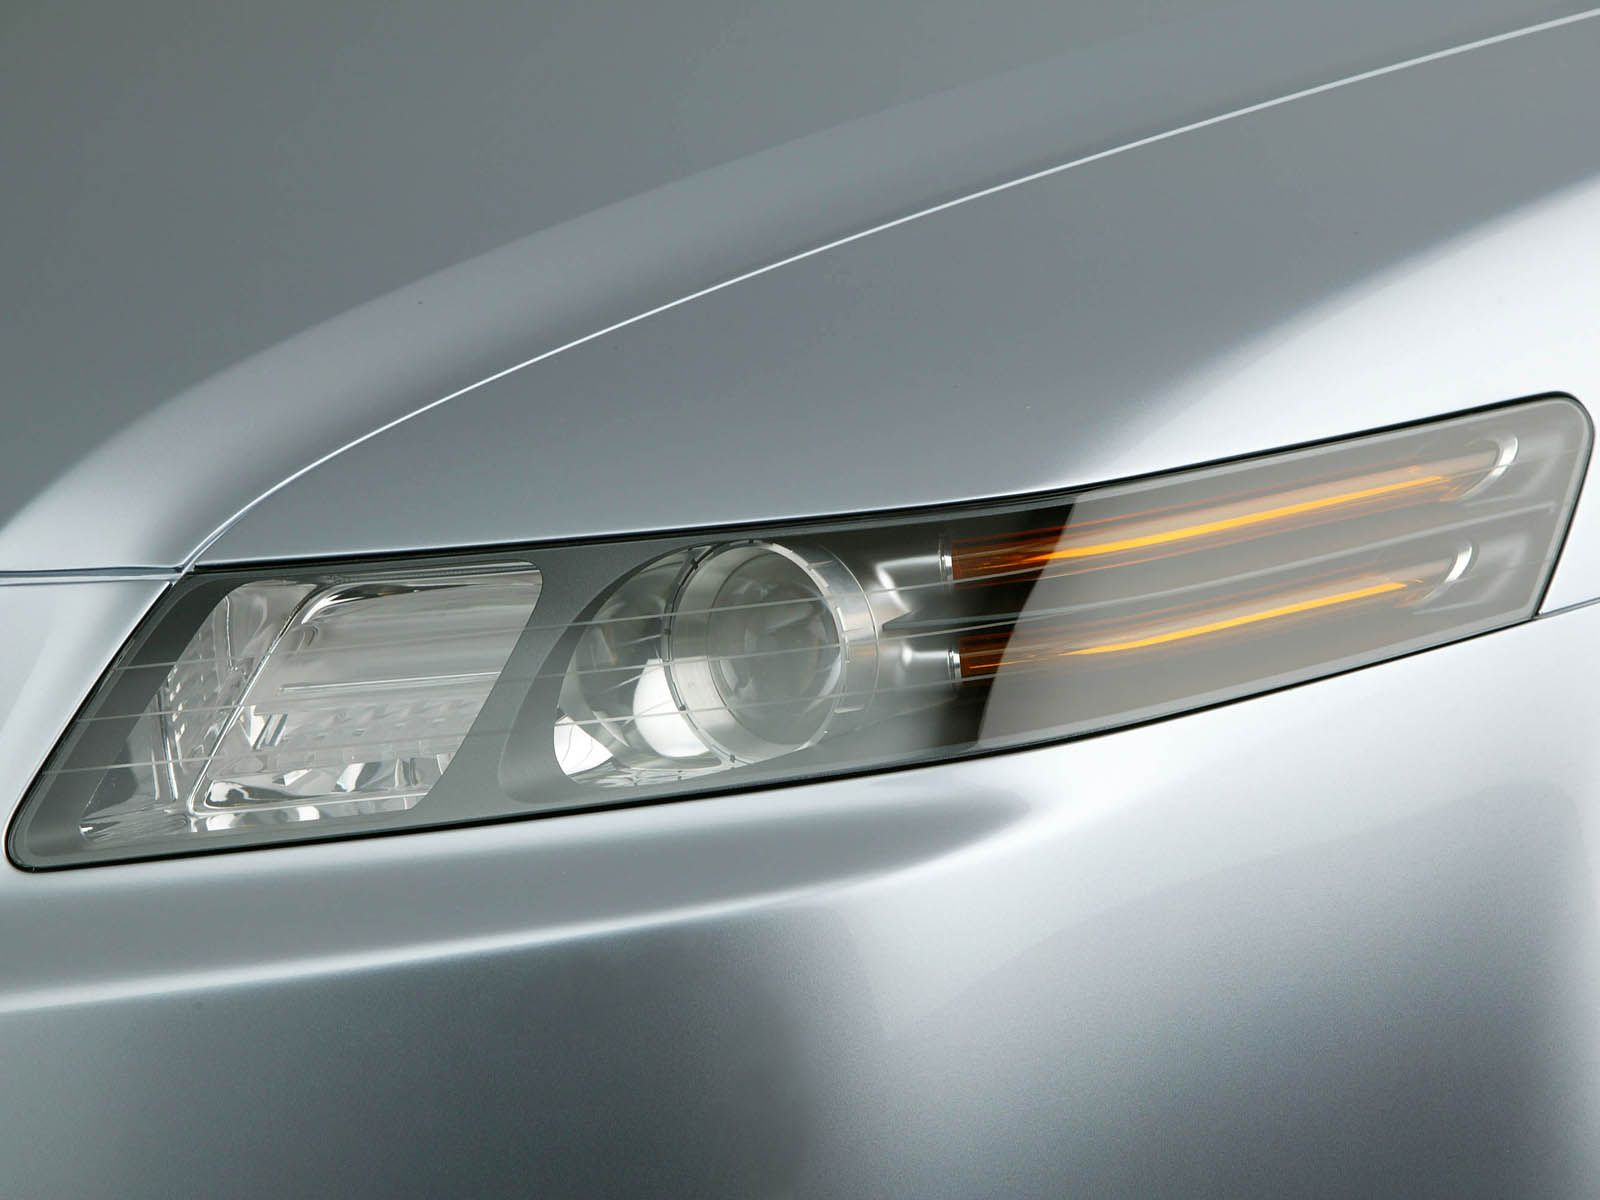 Front light of beautiful Acura TL Concept Car